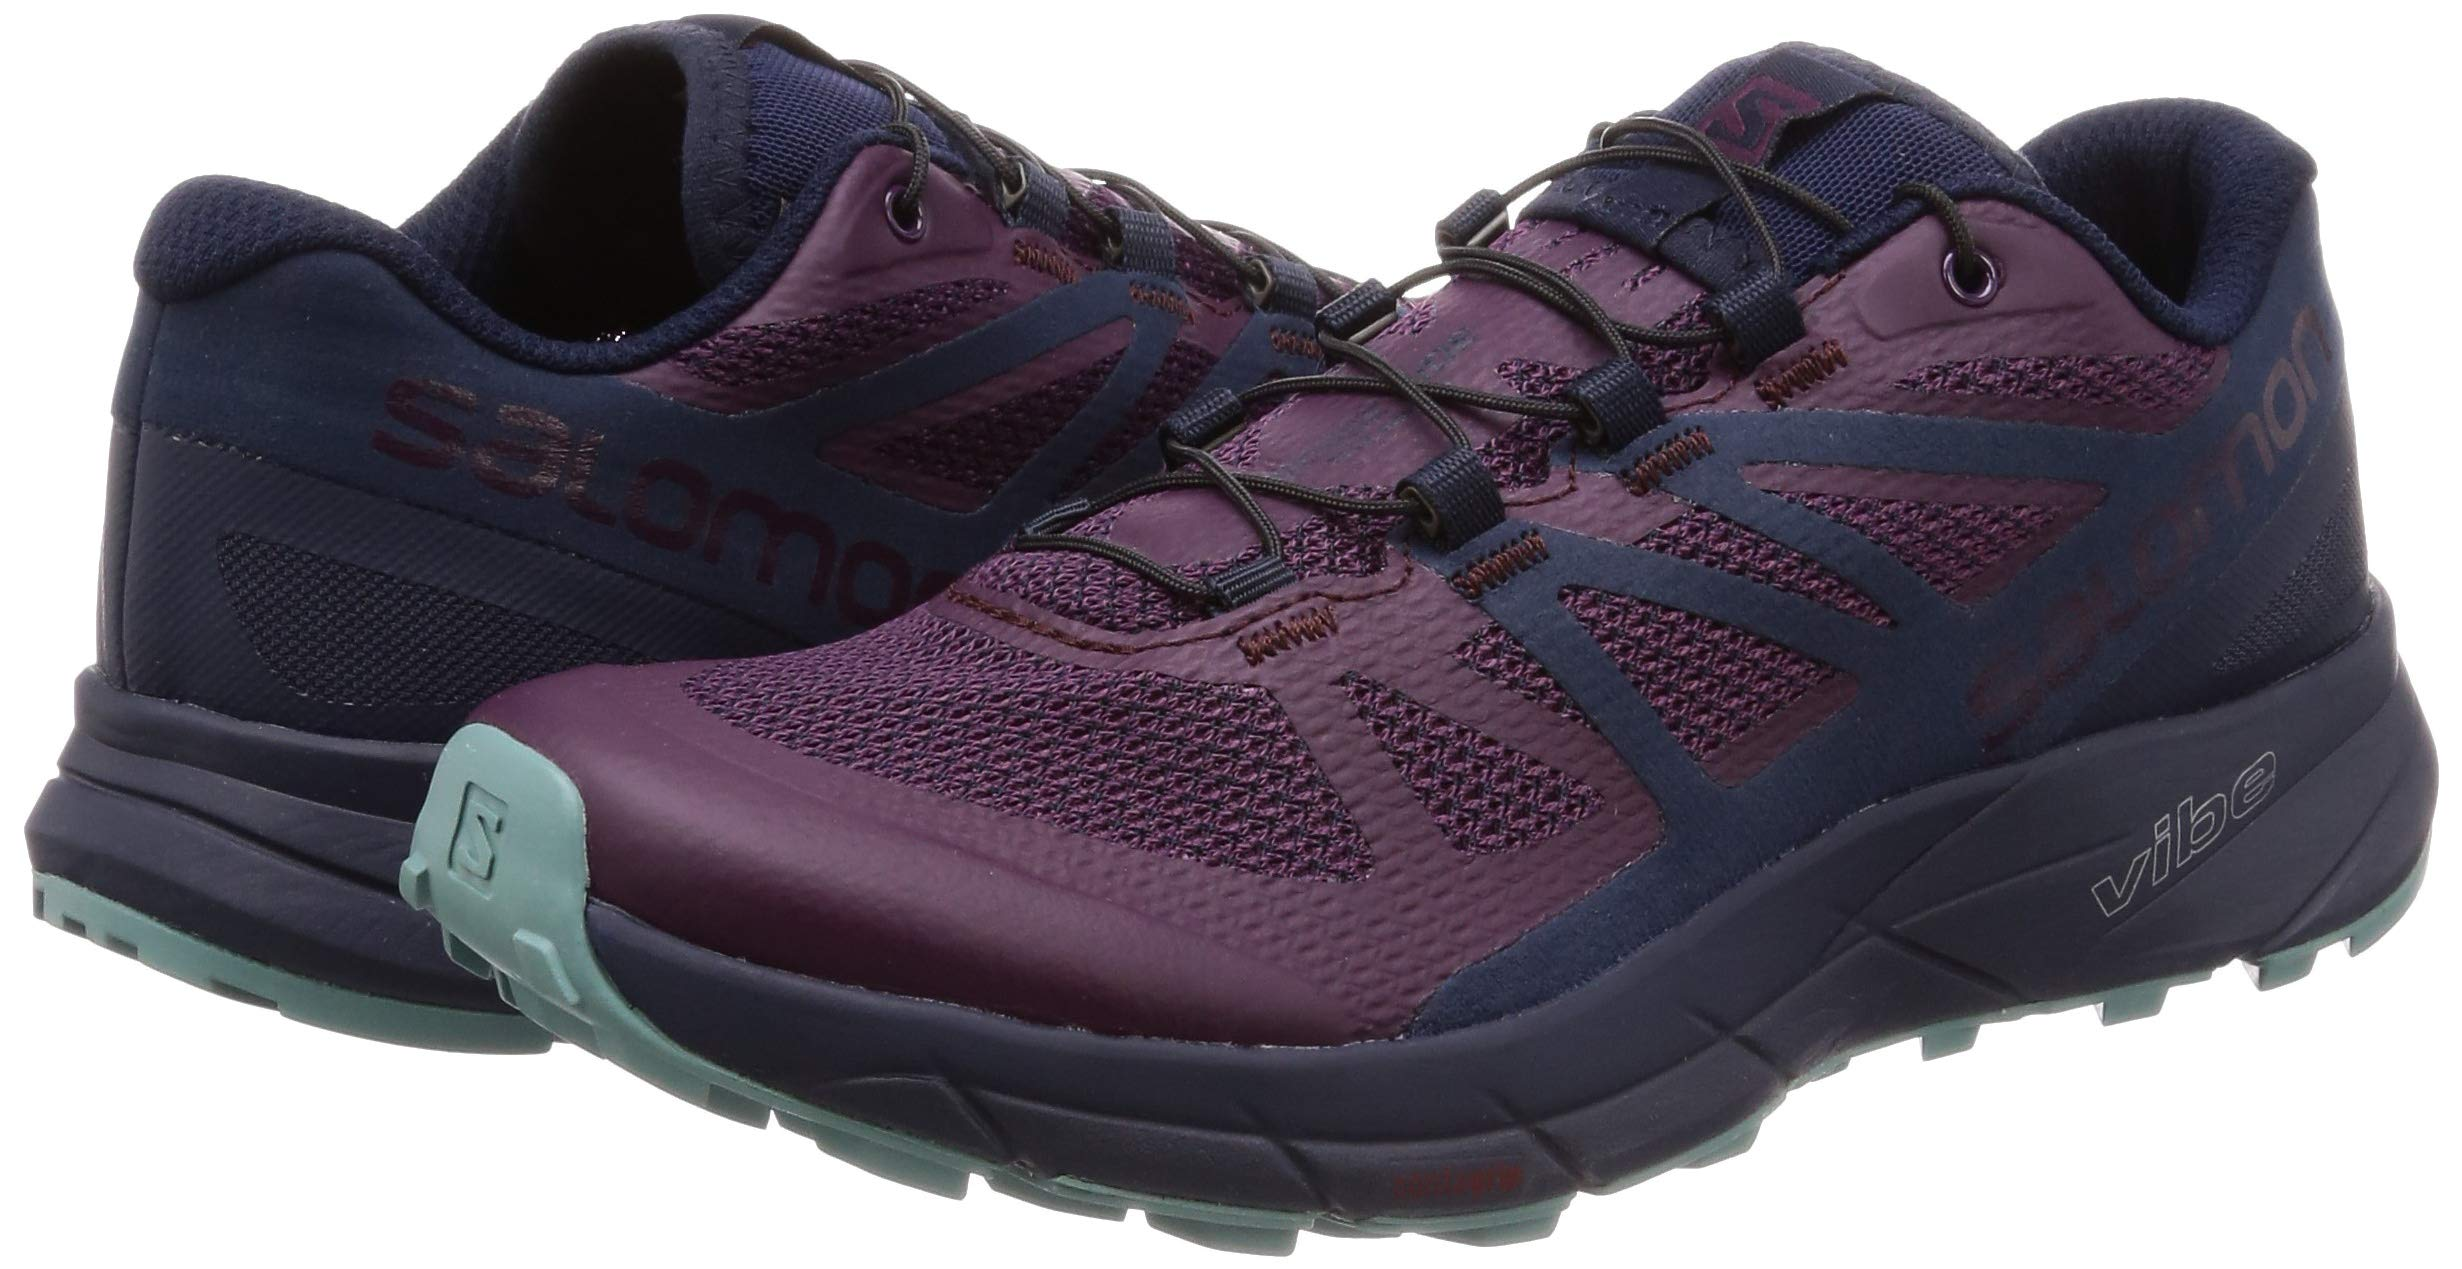 Salomon Sense Ride Running Shoe - Women's Potent Purple/Graphite/Navy Blazer 6 by Salomon (Image #5)